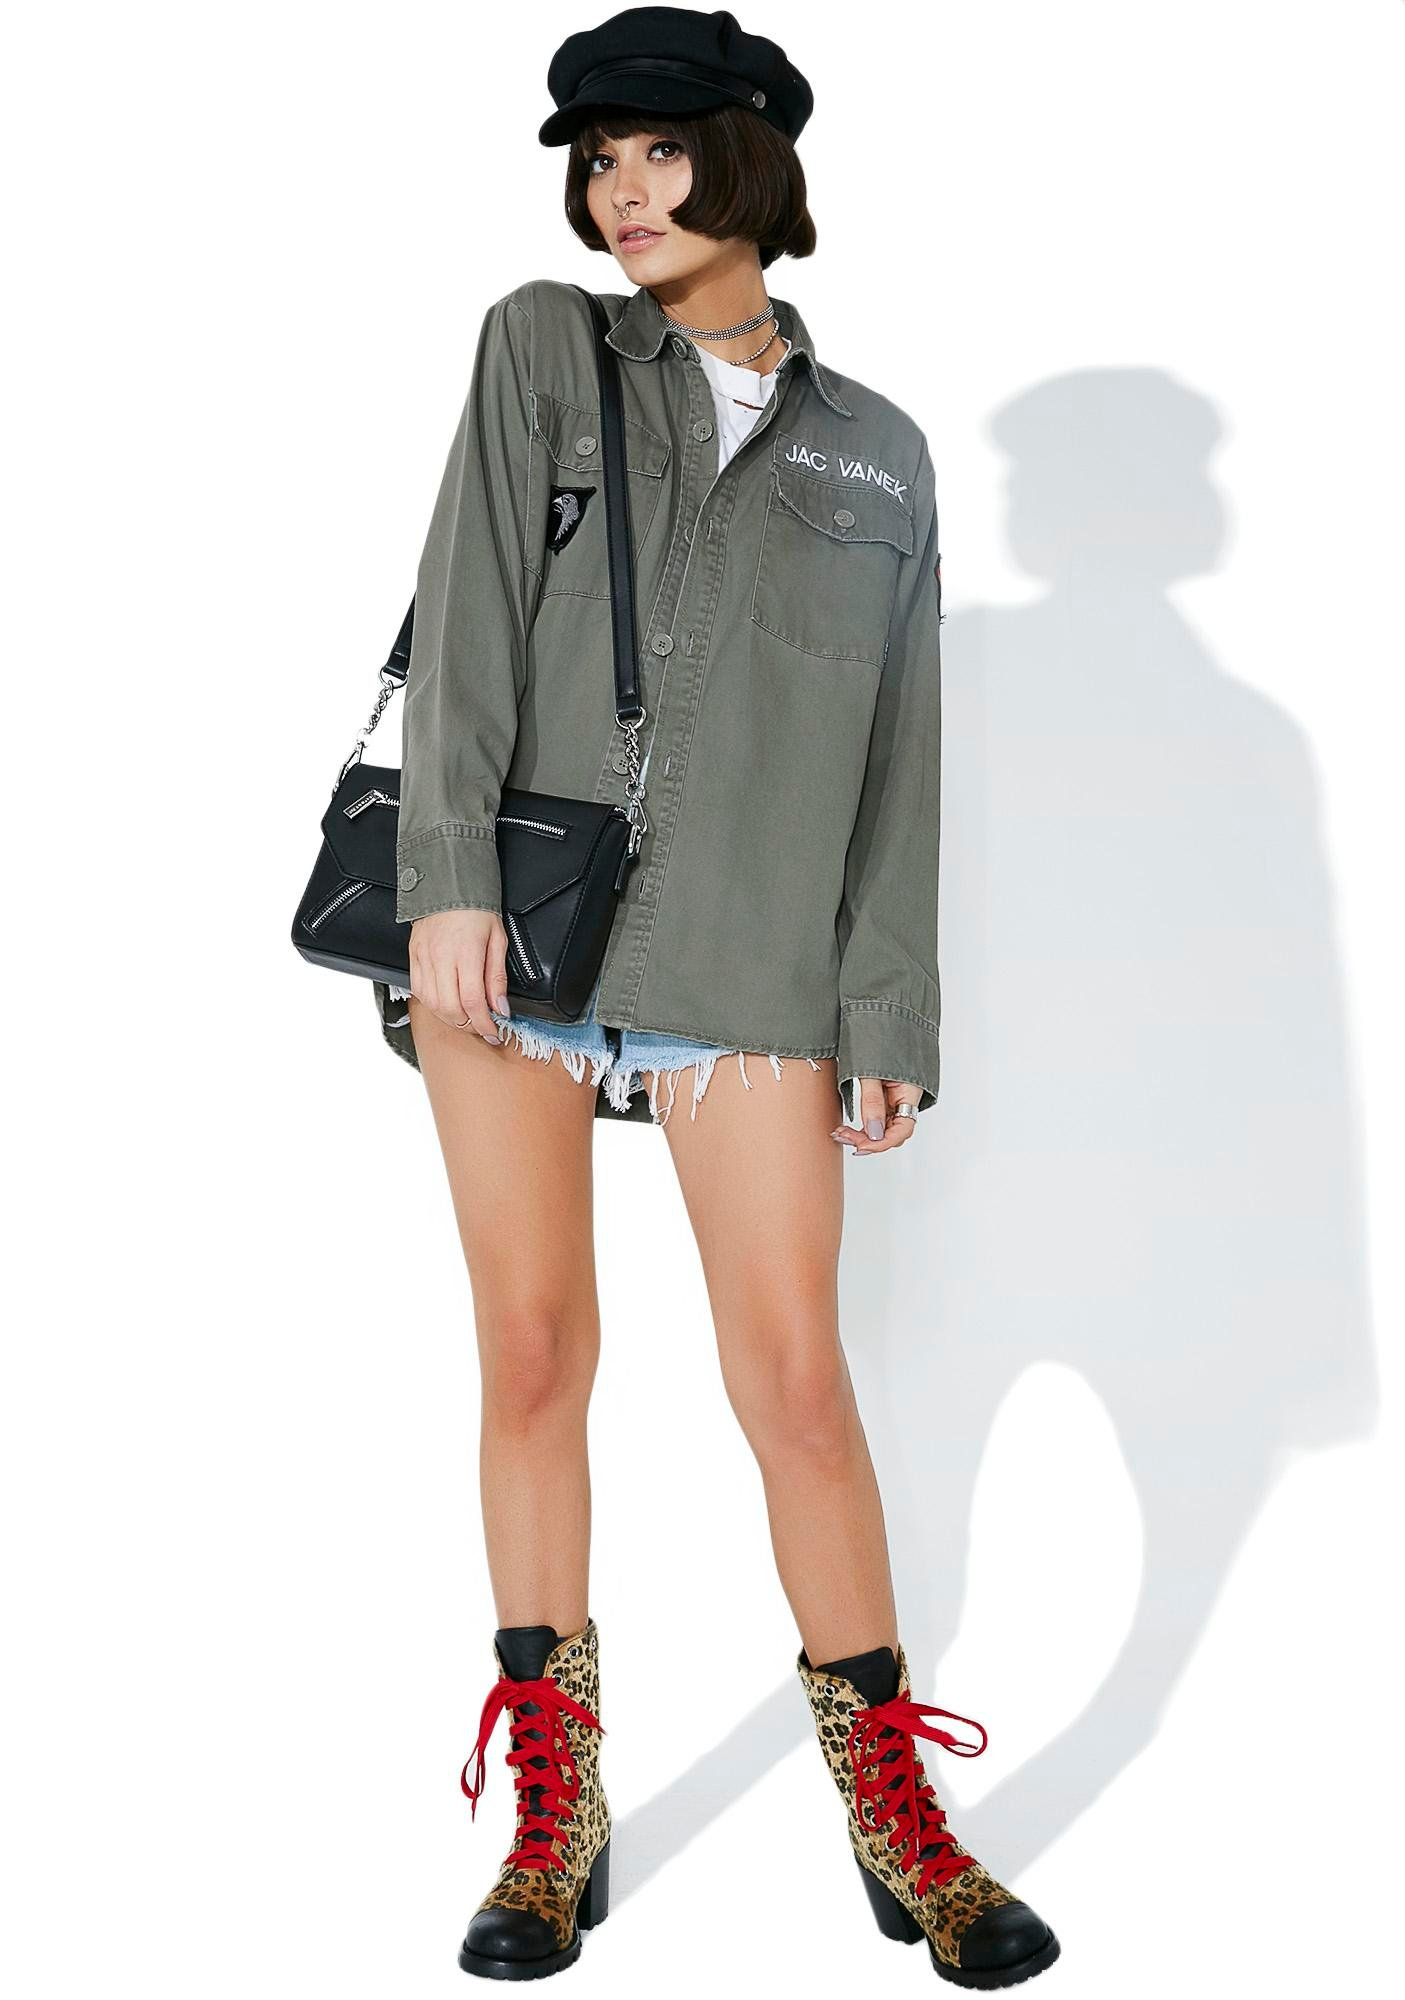 Jac Vanek Ray Of Sunshine Army Jacket